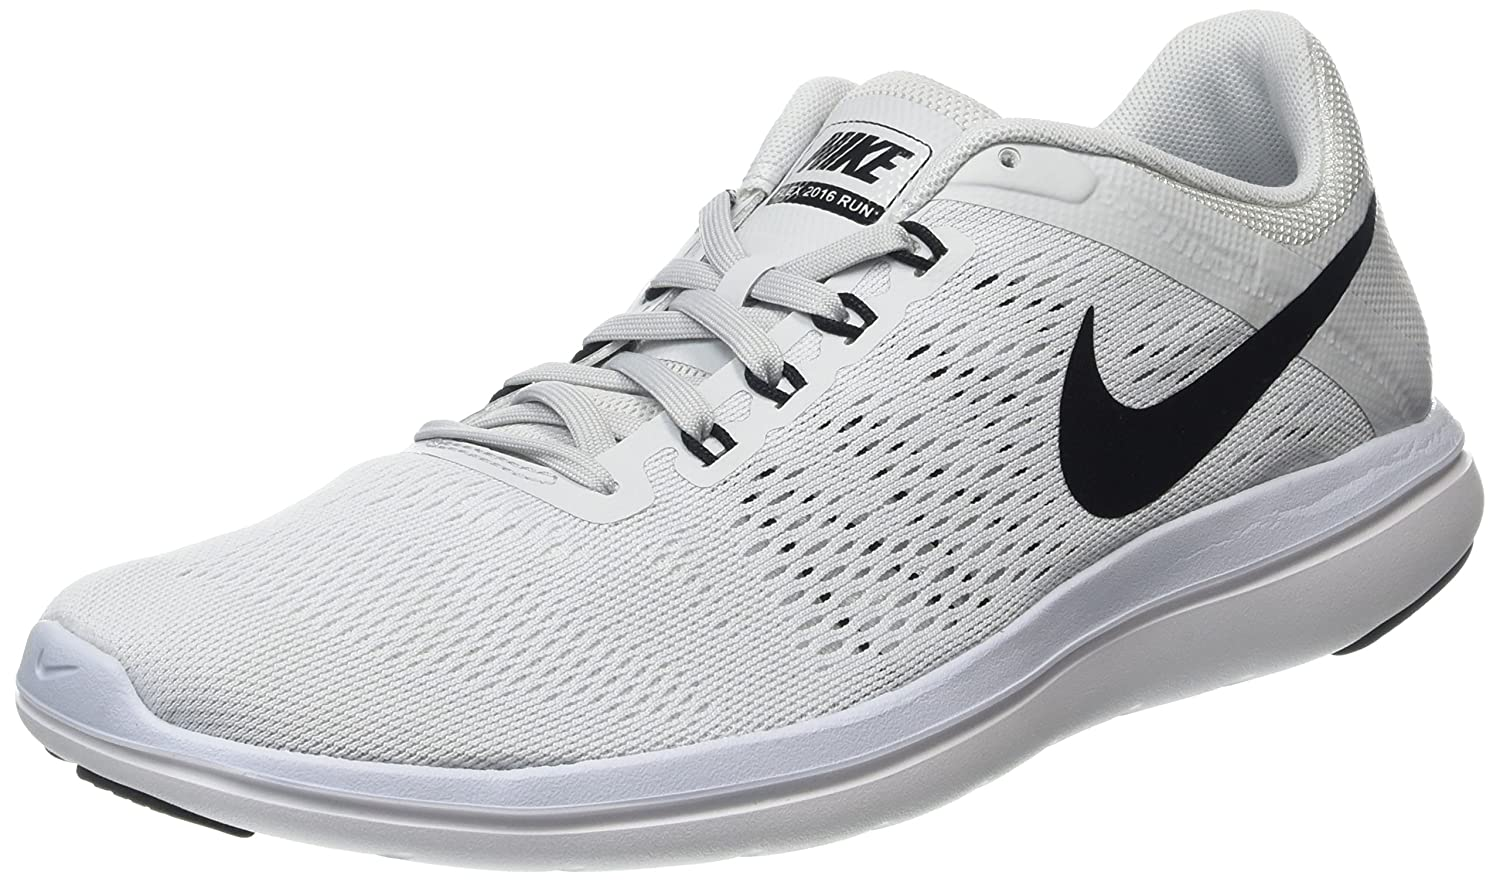 NIKE Women's Flex 2016 Rn Running Shoes B014ECEJYM 6 B(M) US|Pure Platinum/Black White